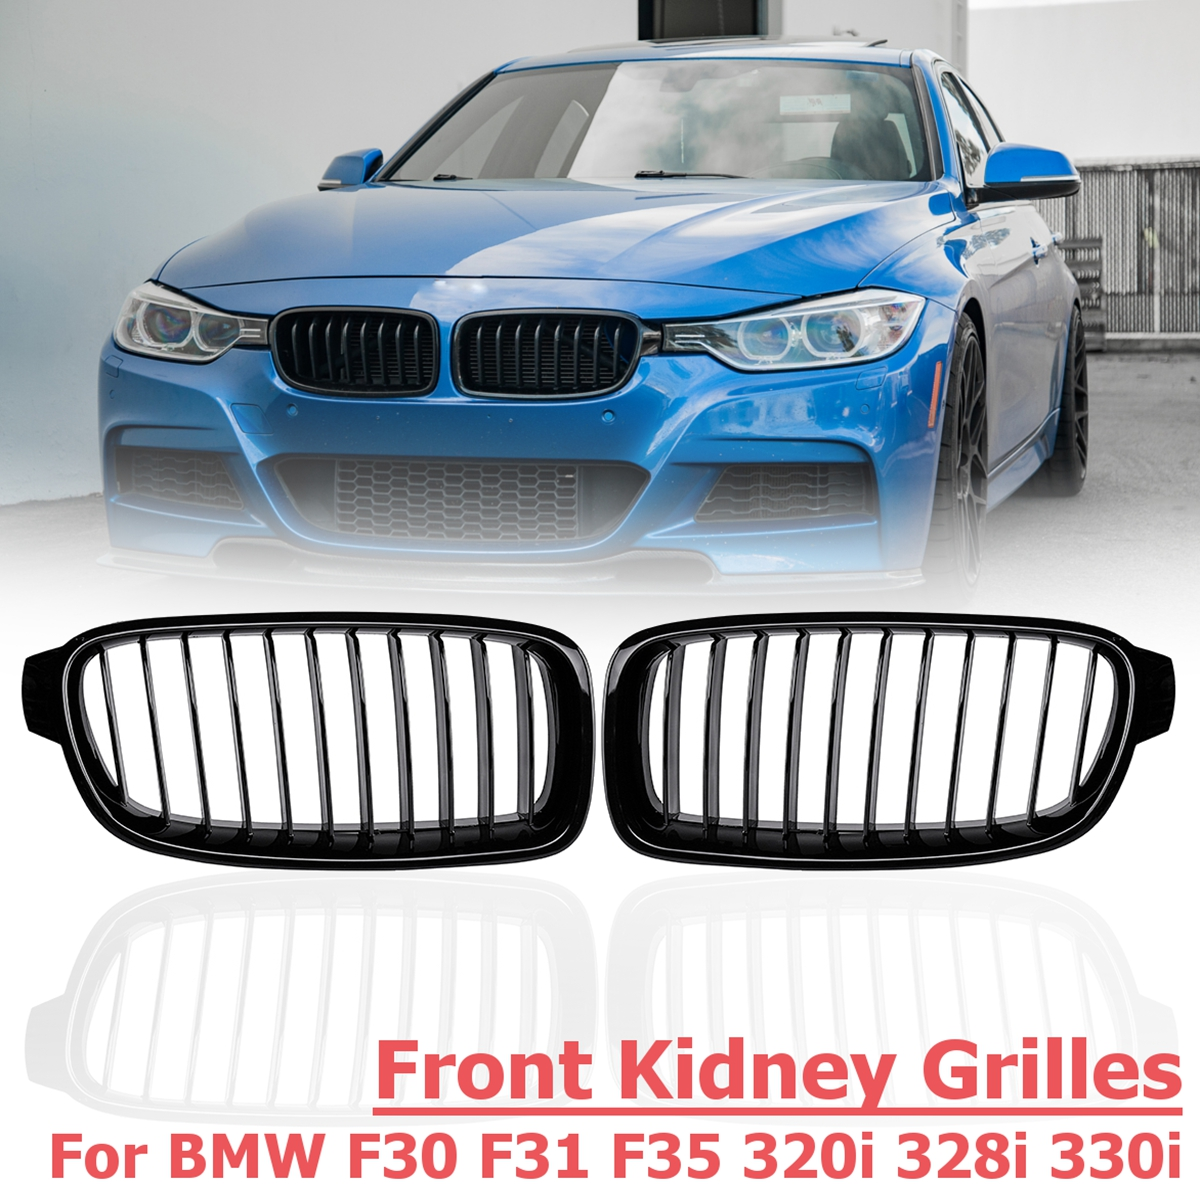 1 Pair Front Kidney Grilles Gloss Black Styling Racing Grills replacement Grilles for BMW F30 F31 F35 320i 2012-20171 Pair Front Kidney Grilles Gloss Black Styling Racing Grills replacement Grilles for BMW F30 F31 F35 320i 2012-2017